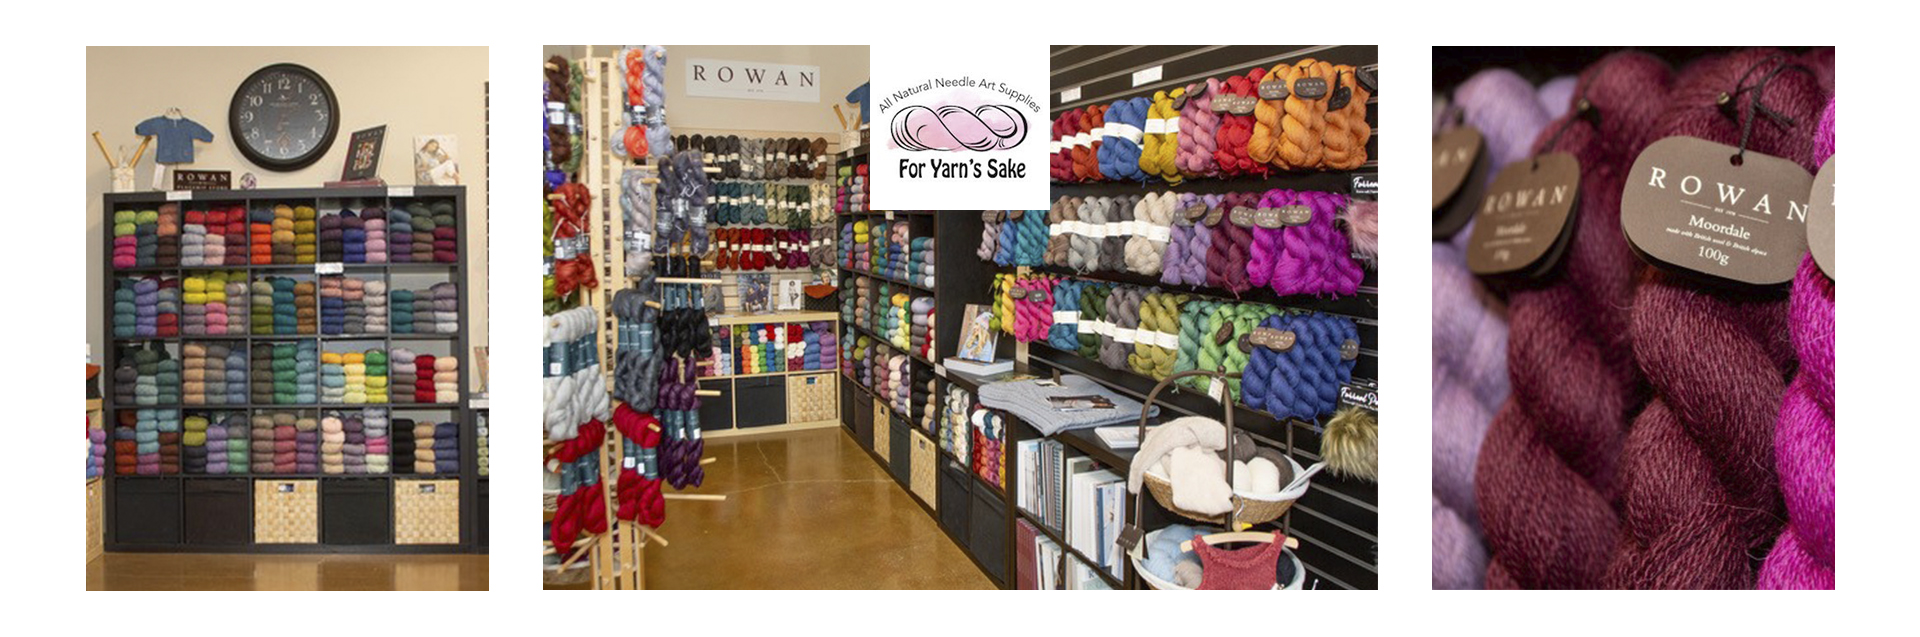 Since opening in 2009, For Yarn's Sake has proudly offered its customers a wide range of Rowan yarns and products, prominently showcased in their own micro shop.